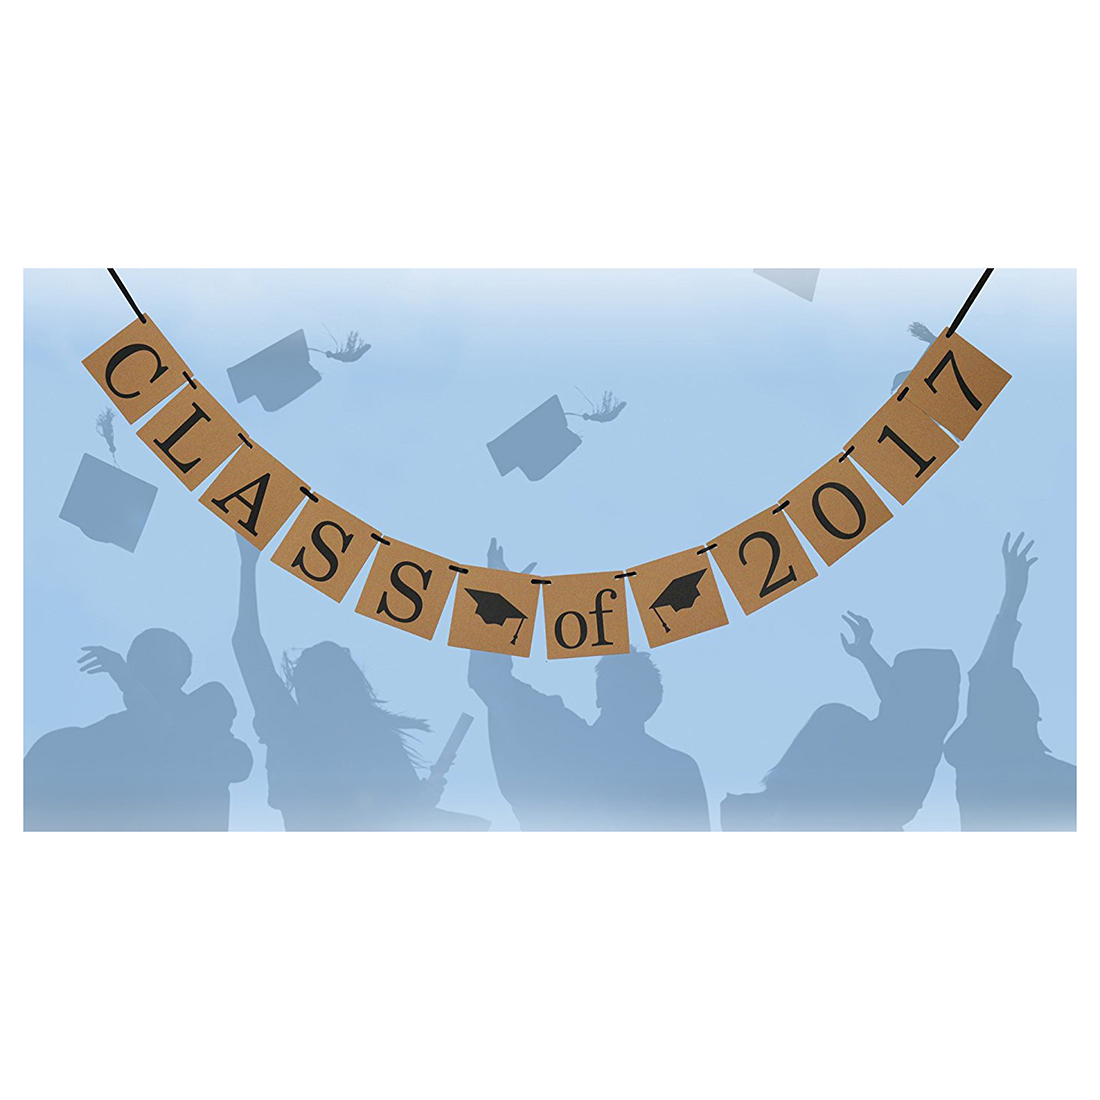 aima class of 2017 banner graduation sign photo props graduate party